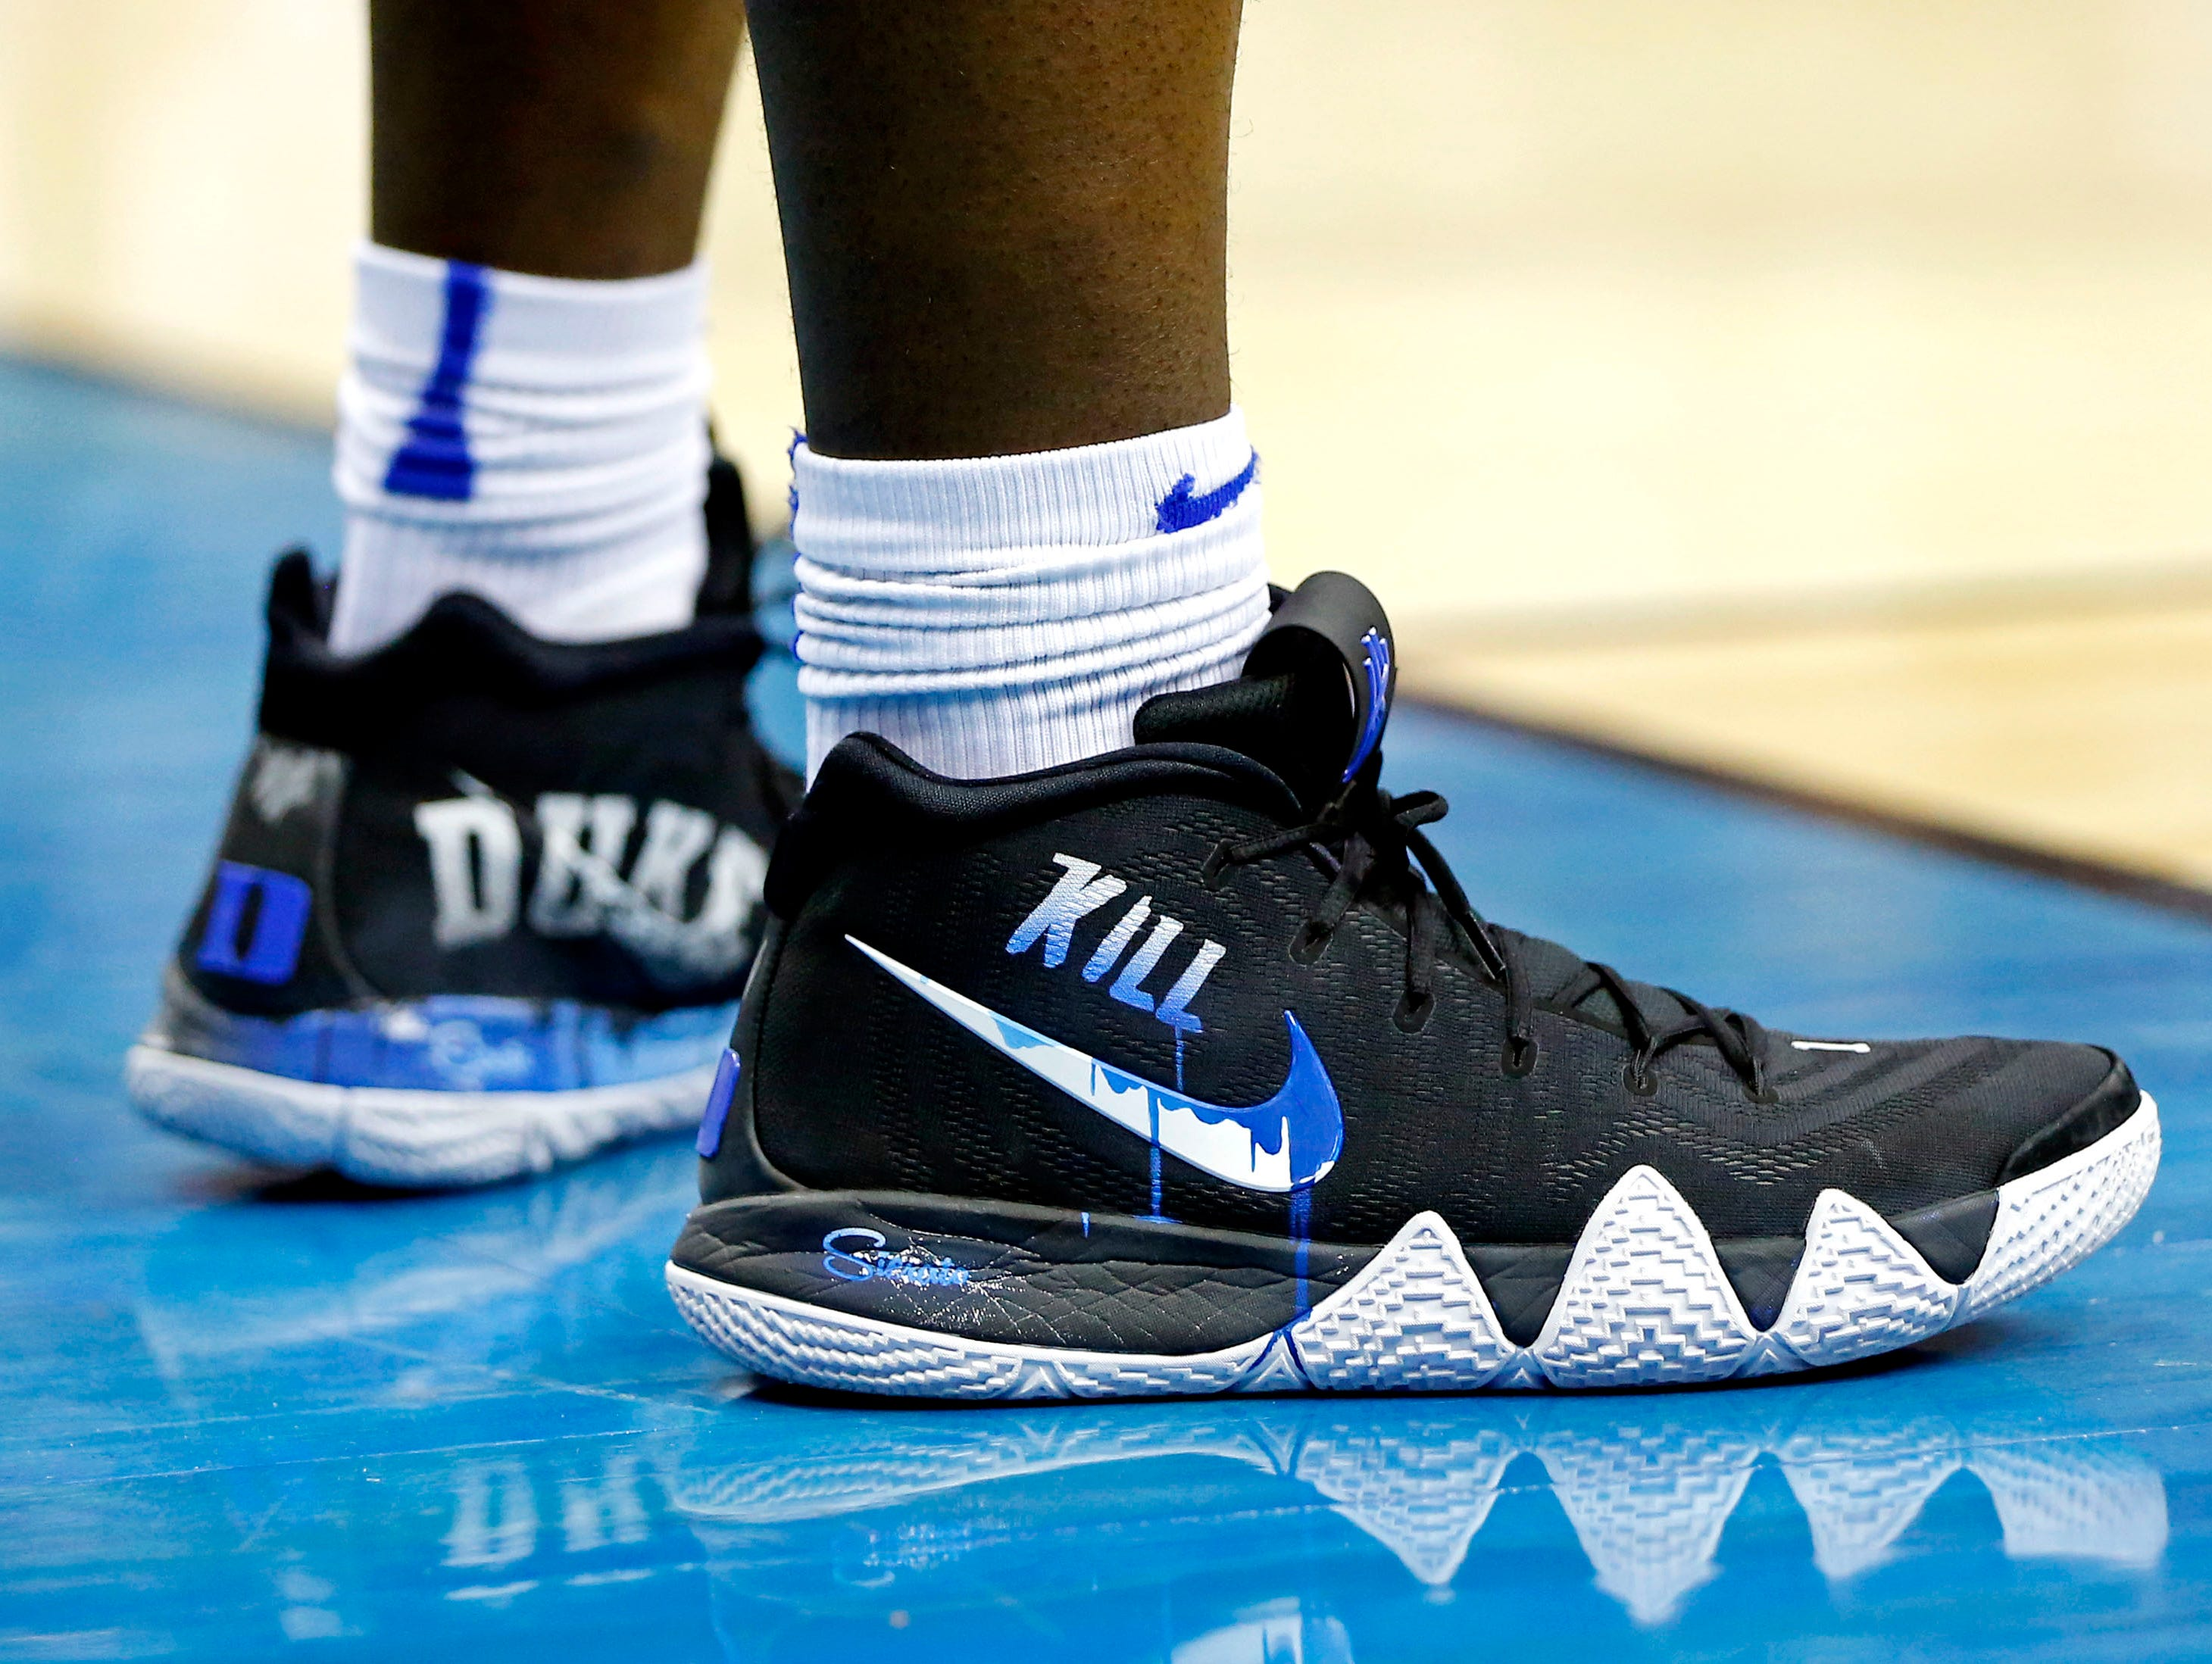 Mar 31, 2019; Washington, DC, USA; A view of the shoes of Duke Blue Devils forward Zion Williamson (1) during the first half against the Michigan State Spartans in the championship game of the east regional of the 2019 NCAA Tournament at Capital One Arena. Mandatory Credit: Amber Searls-USA TODAY Sports